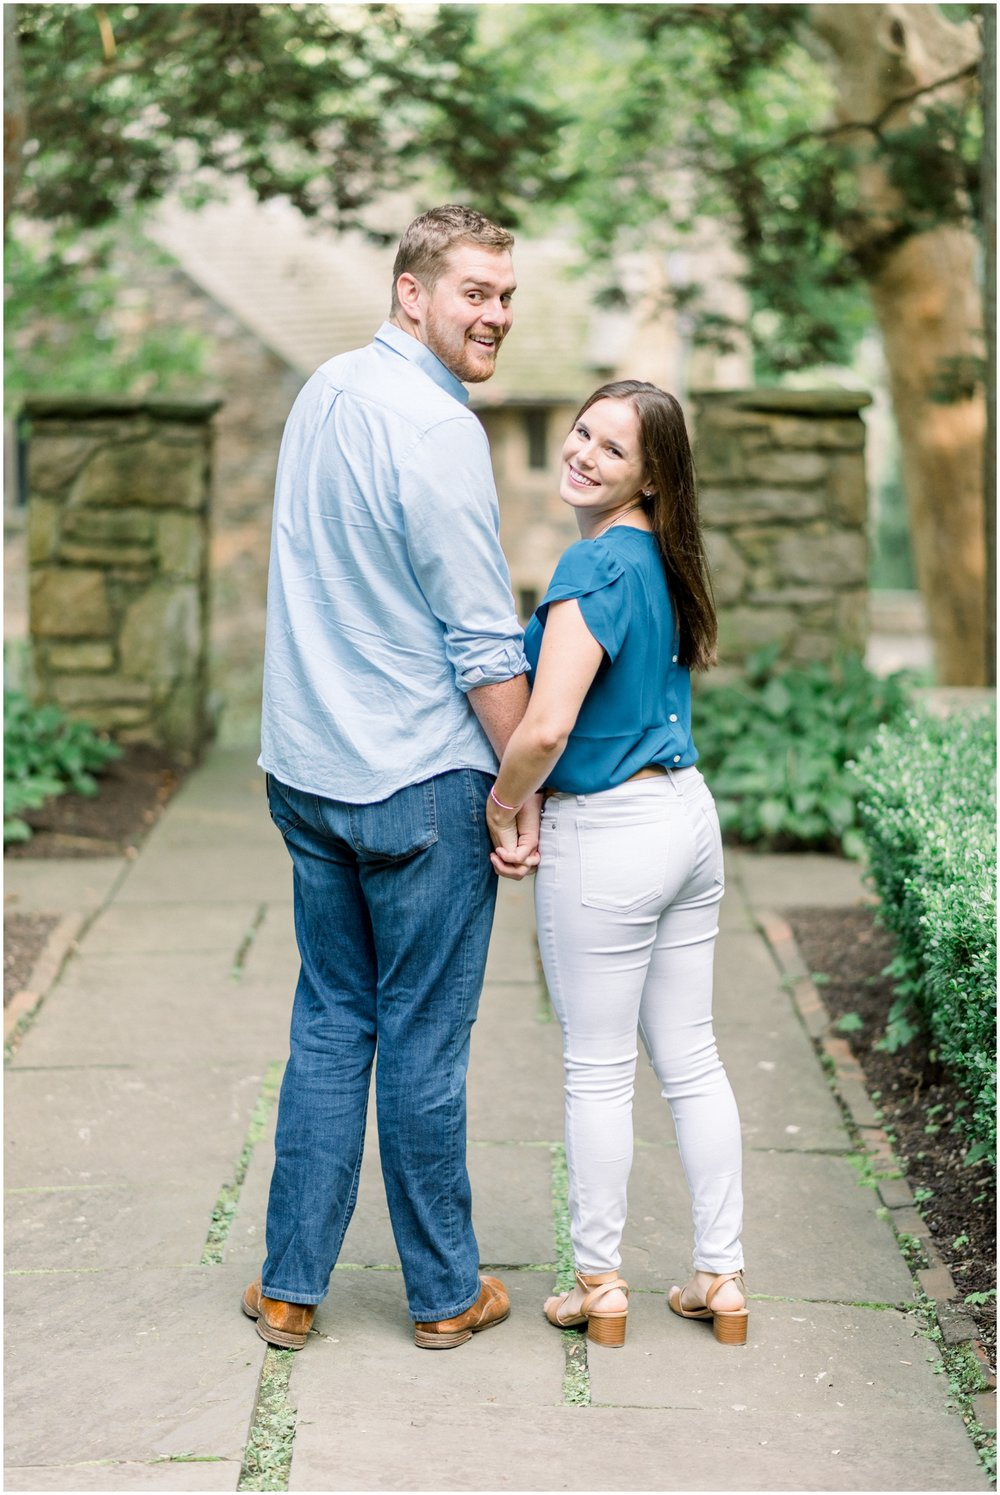 Summer Engagement Session at Hunting Hill Mansion - Krista Brackin Photography_0001.jpg